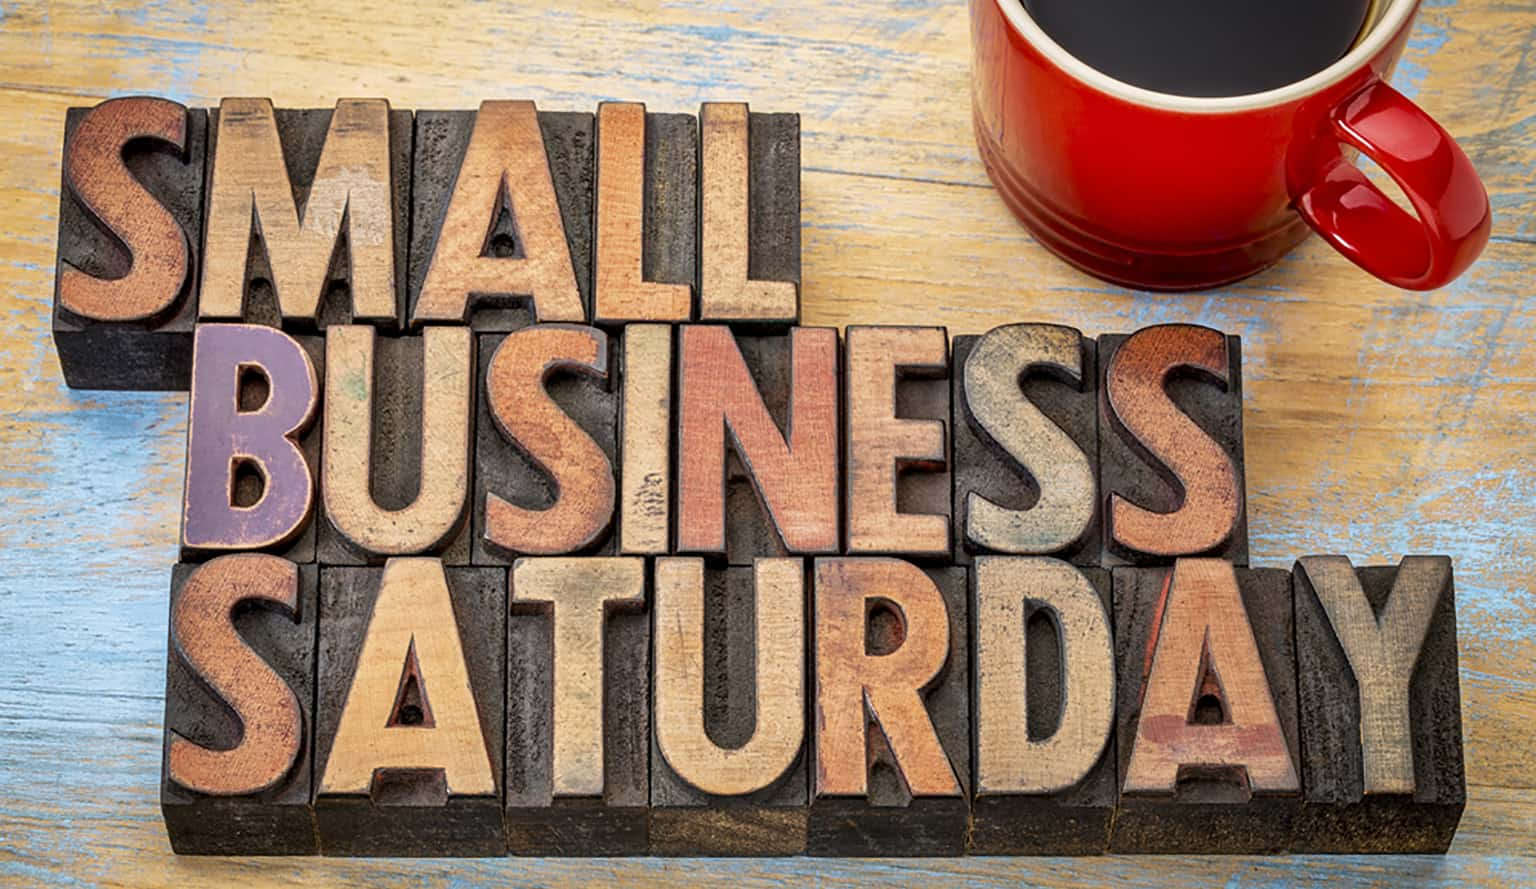 Why Small Business Saturday Matters